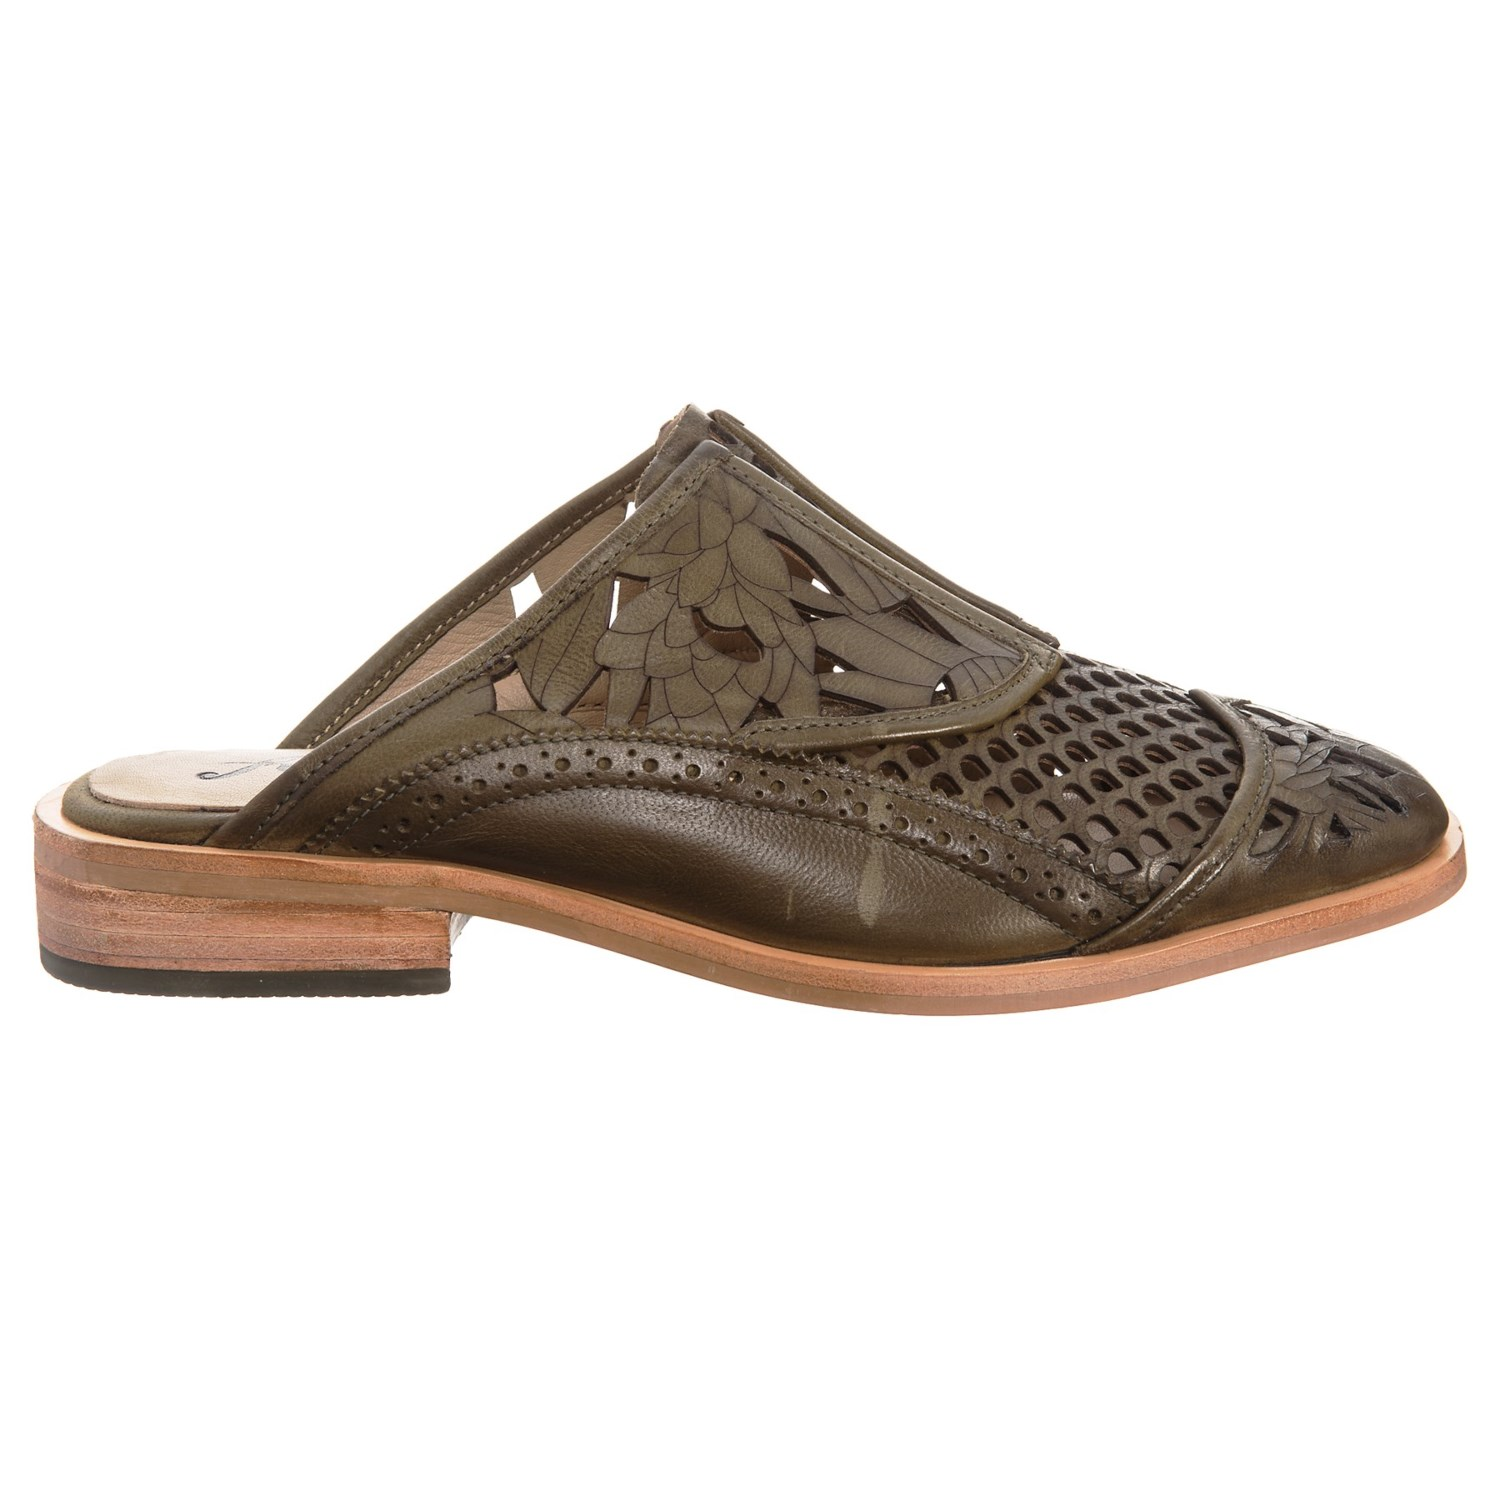 5d1c54ce9ec Free People Paramount Leather Mule Shoes (For Women) - Save 25%